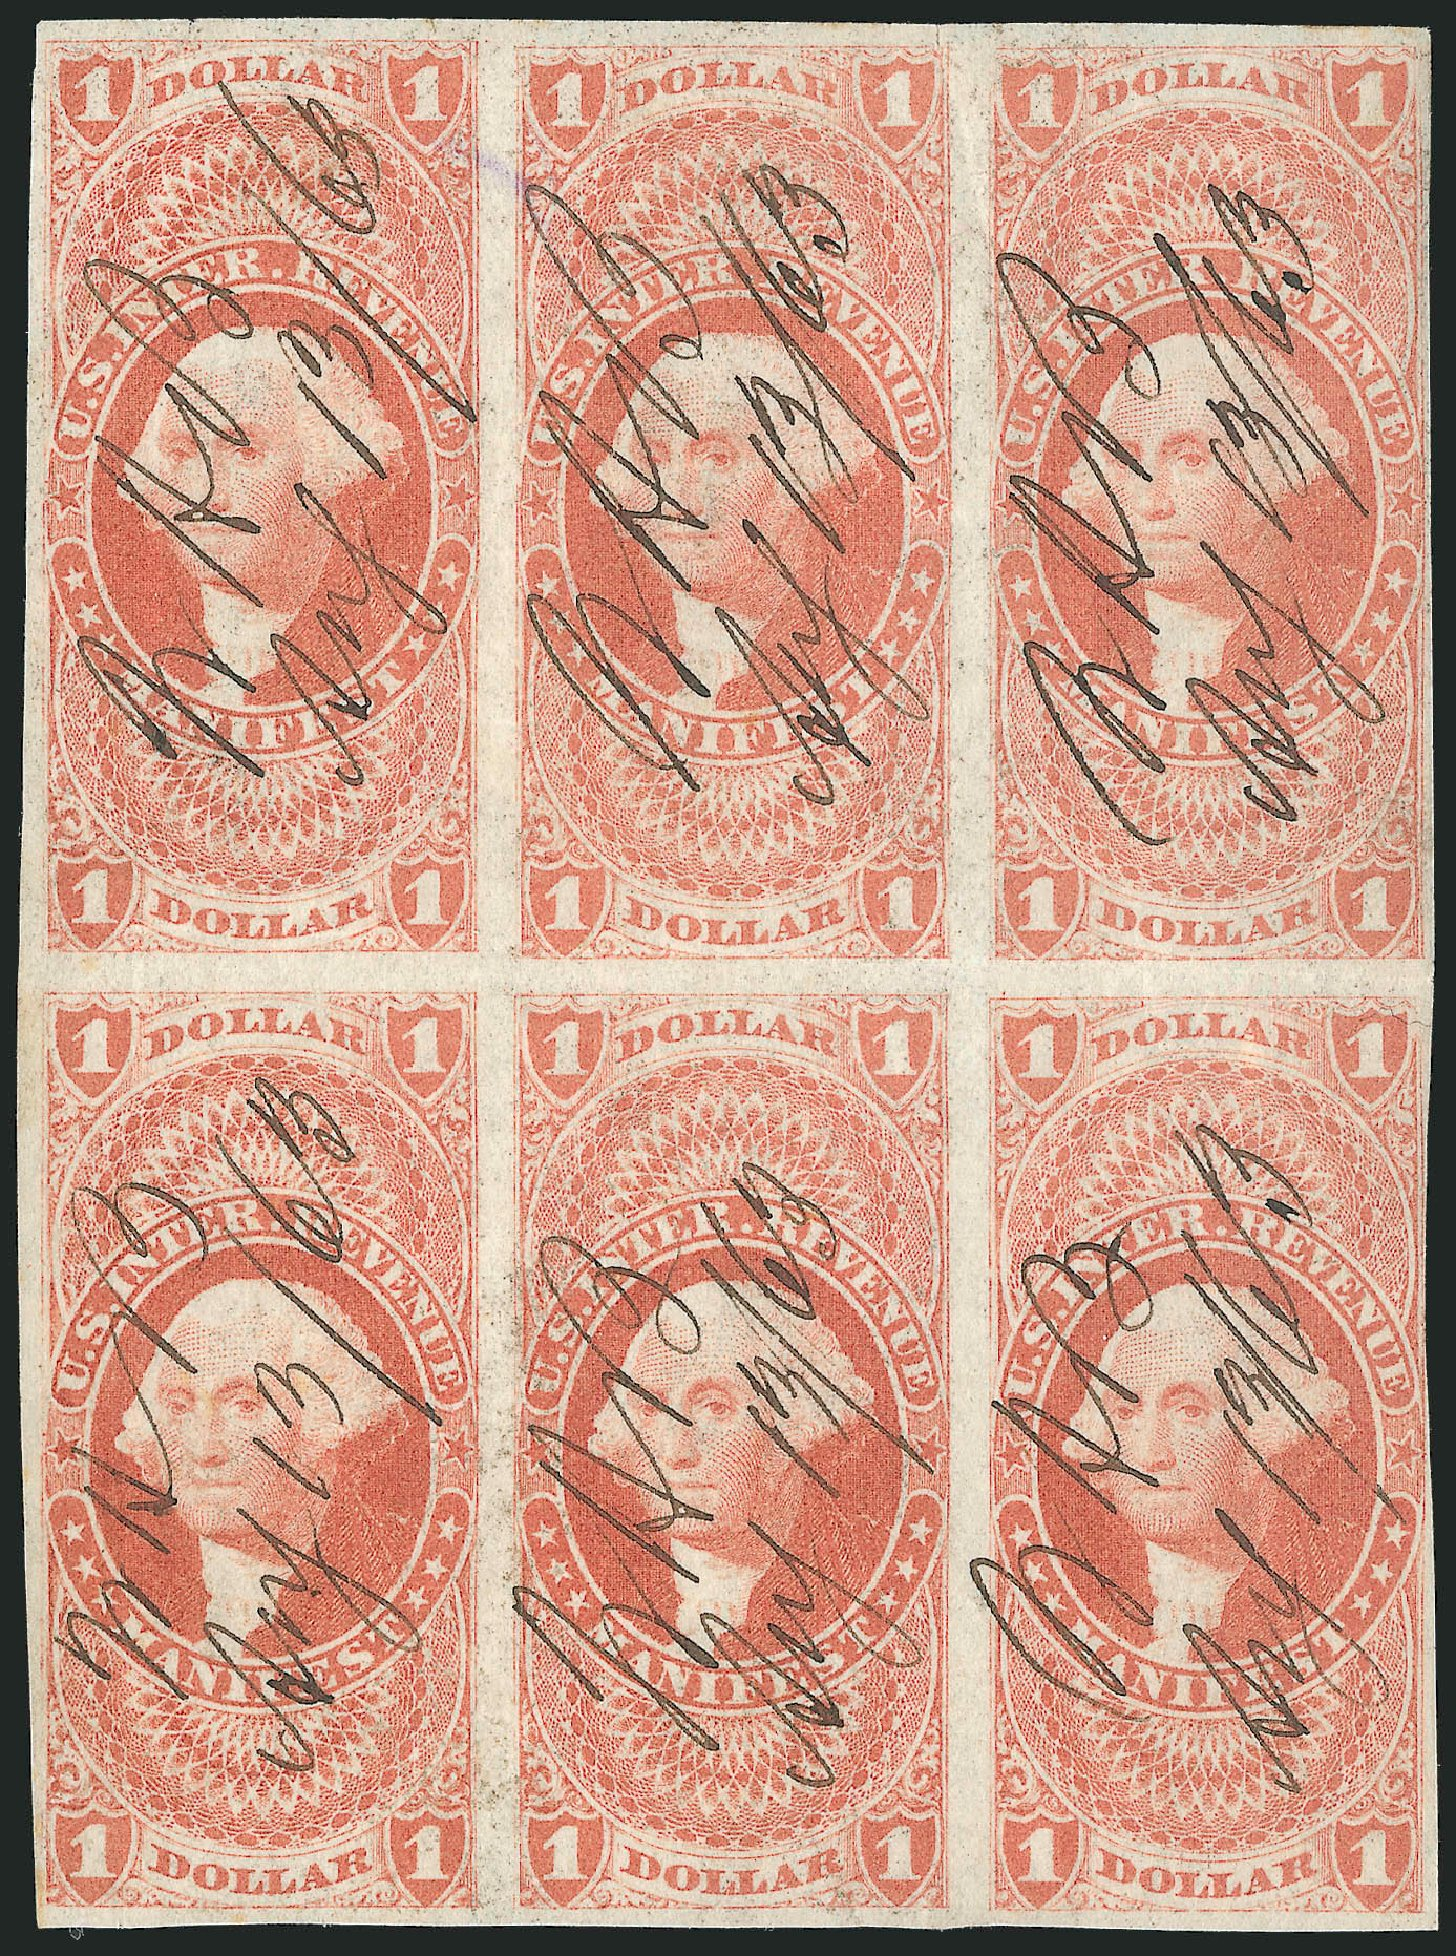 US Stamps Prices Scott Catalogue #R72 - 1862 US$1.00 Revenue Manifest. Robert Siegel Auction Galleries, Dec 2014, Sale 1089, Lot 357